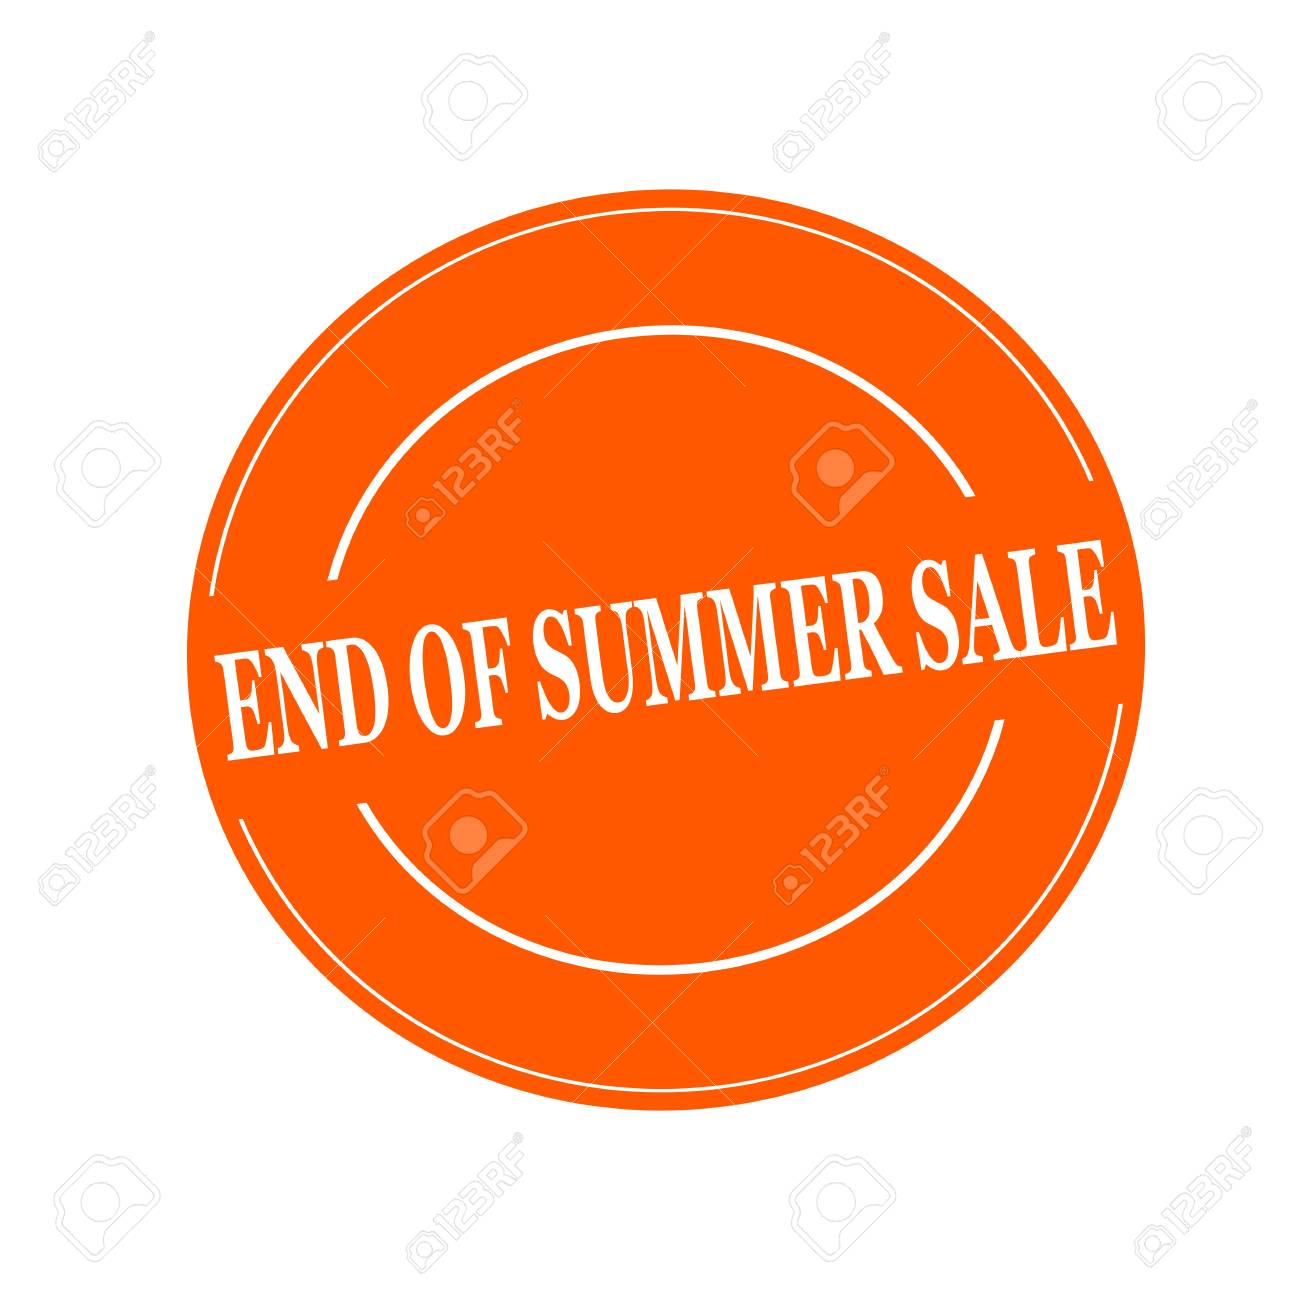 Gorgeous Summer Sale Stamp Text On Circle On Orage Background End Summer Sale Stamp Text On Circle On Orage Background Stockphoto End Summer Sale Home Depot End Summer Sale Ticketmaster End houzz-03 End Of Summer Sale